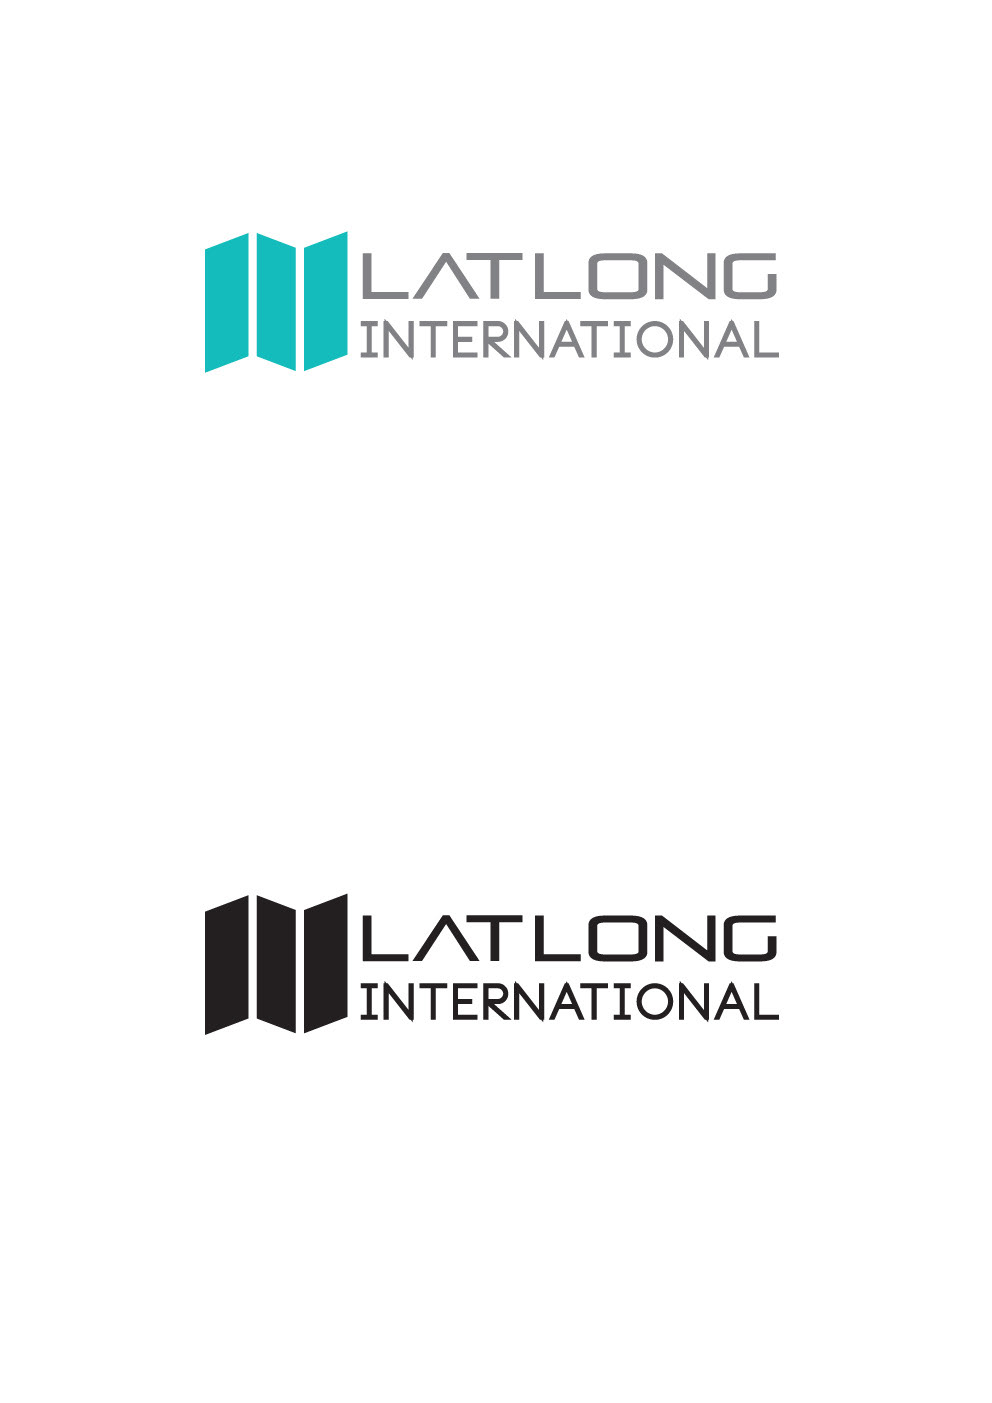 Latlong International